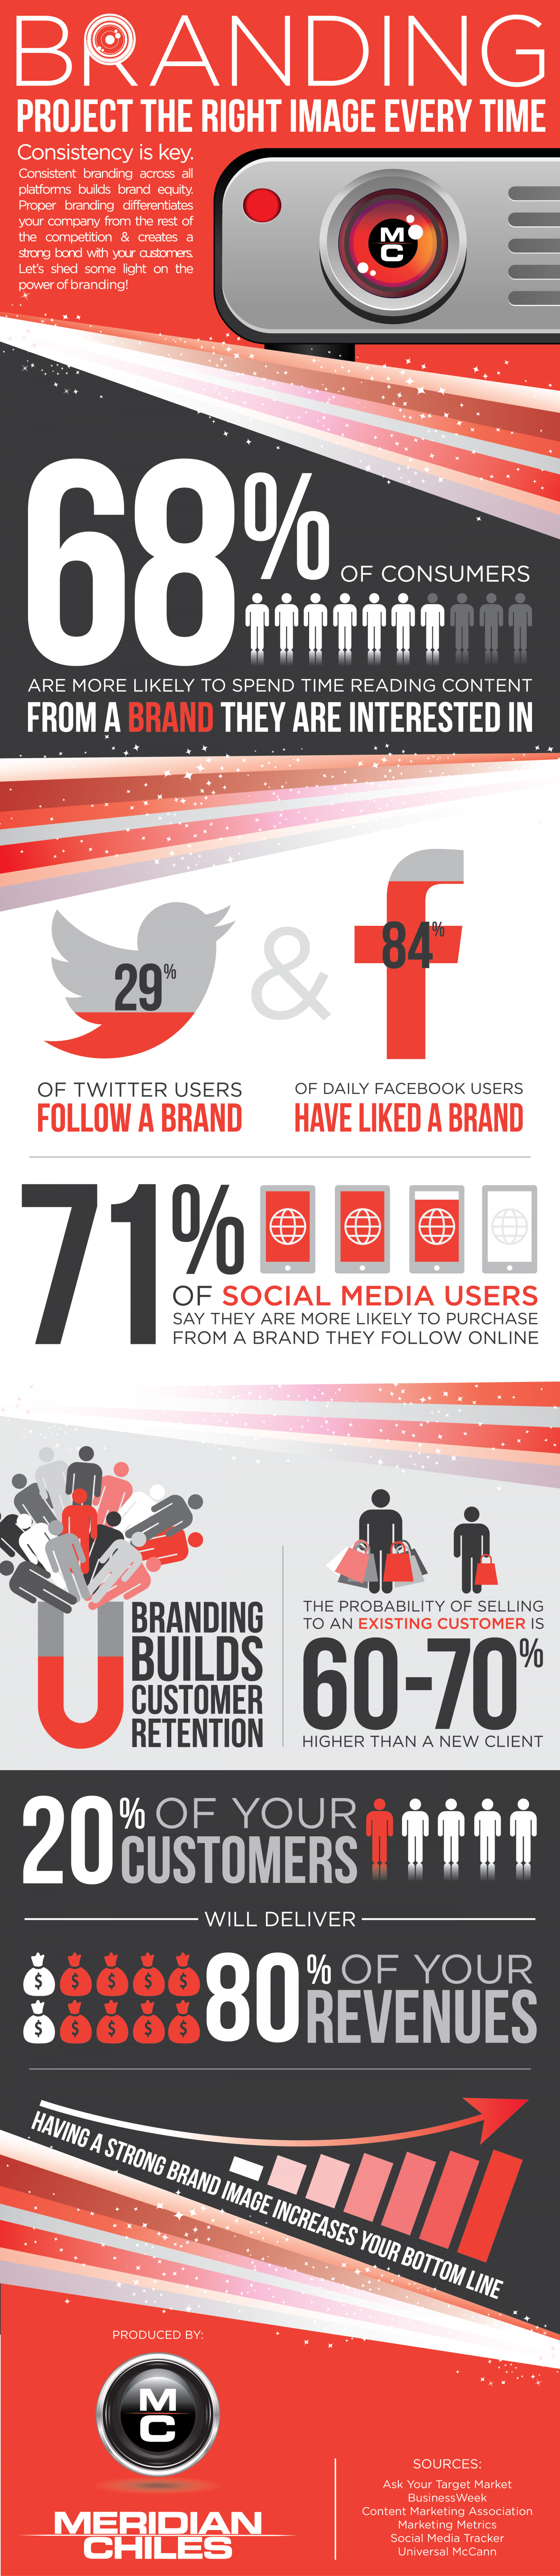 Branding: Project the Right Image Every Time Infographic